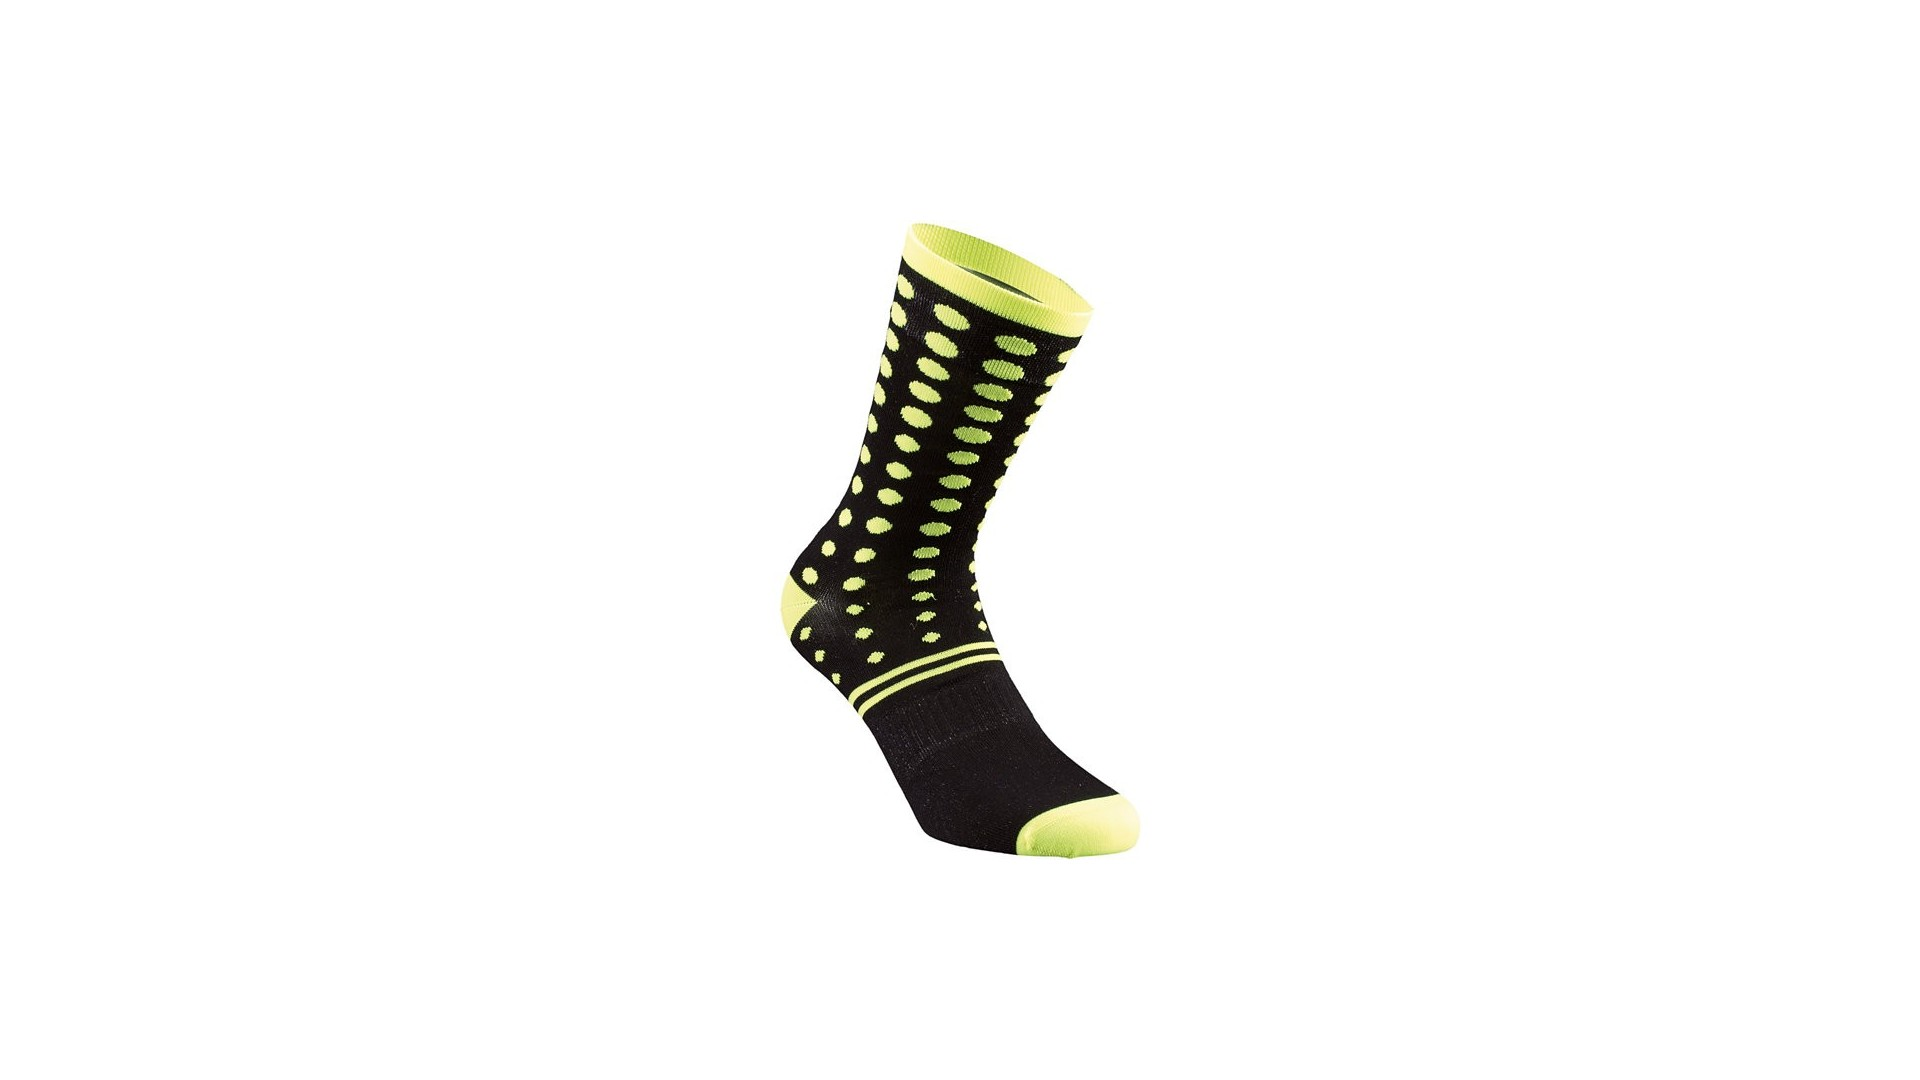 Dots Calcetines Verano Specialized Black/Neon Yellow 2 IBKBike.es